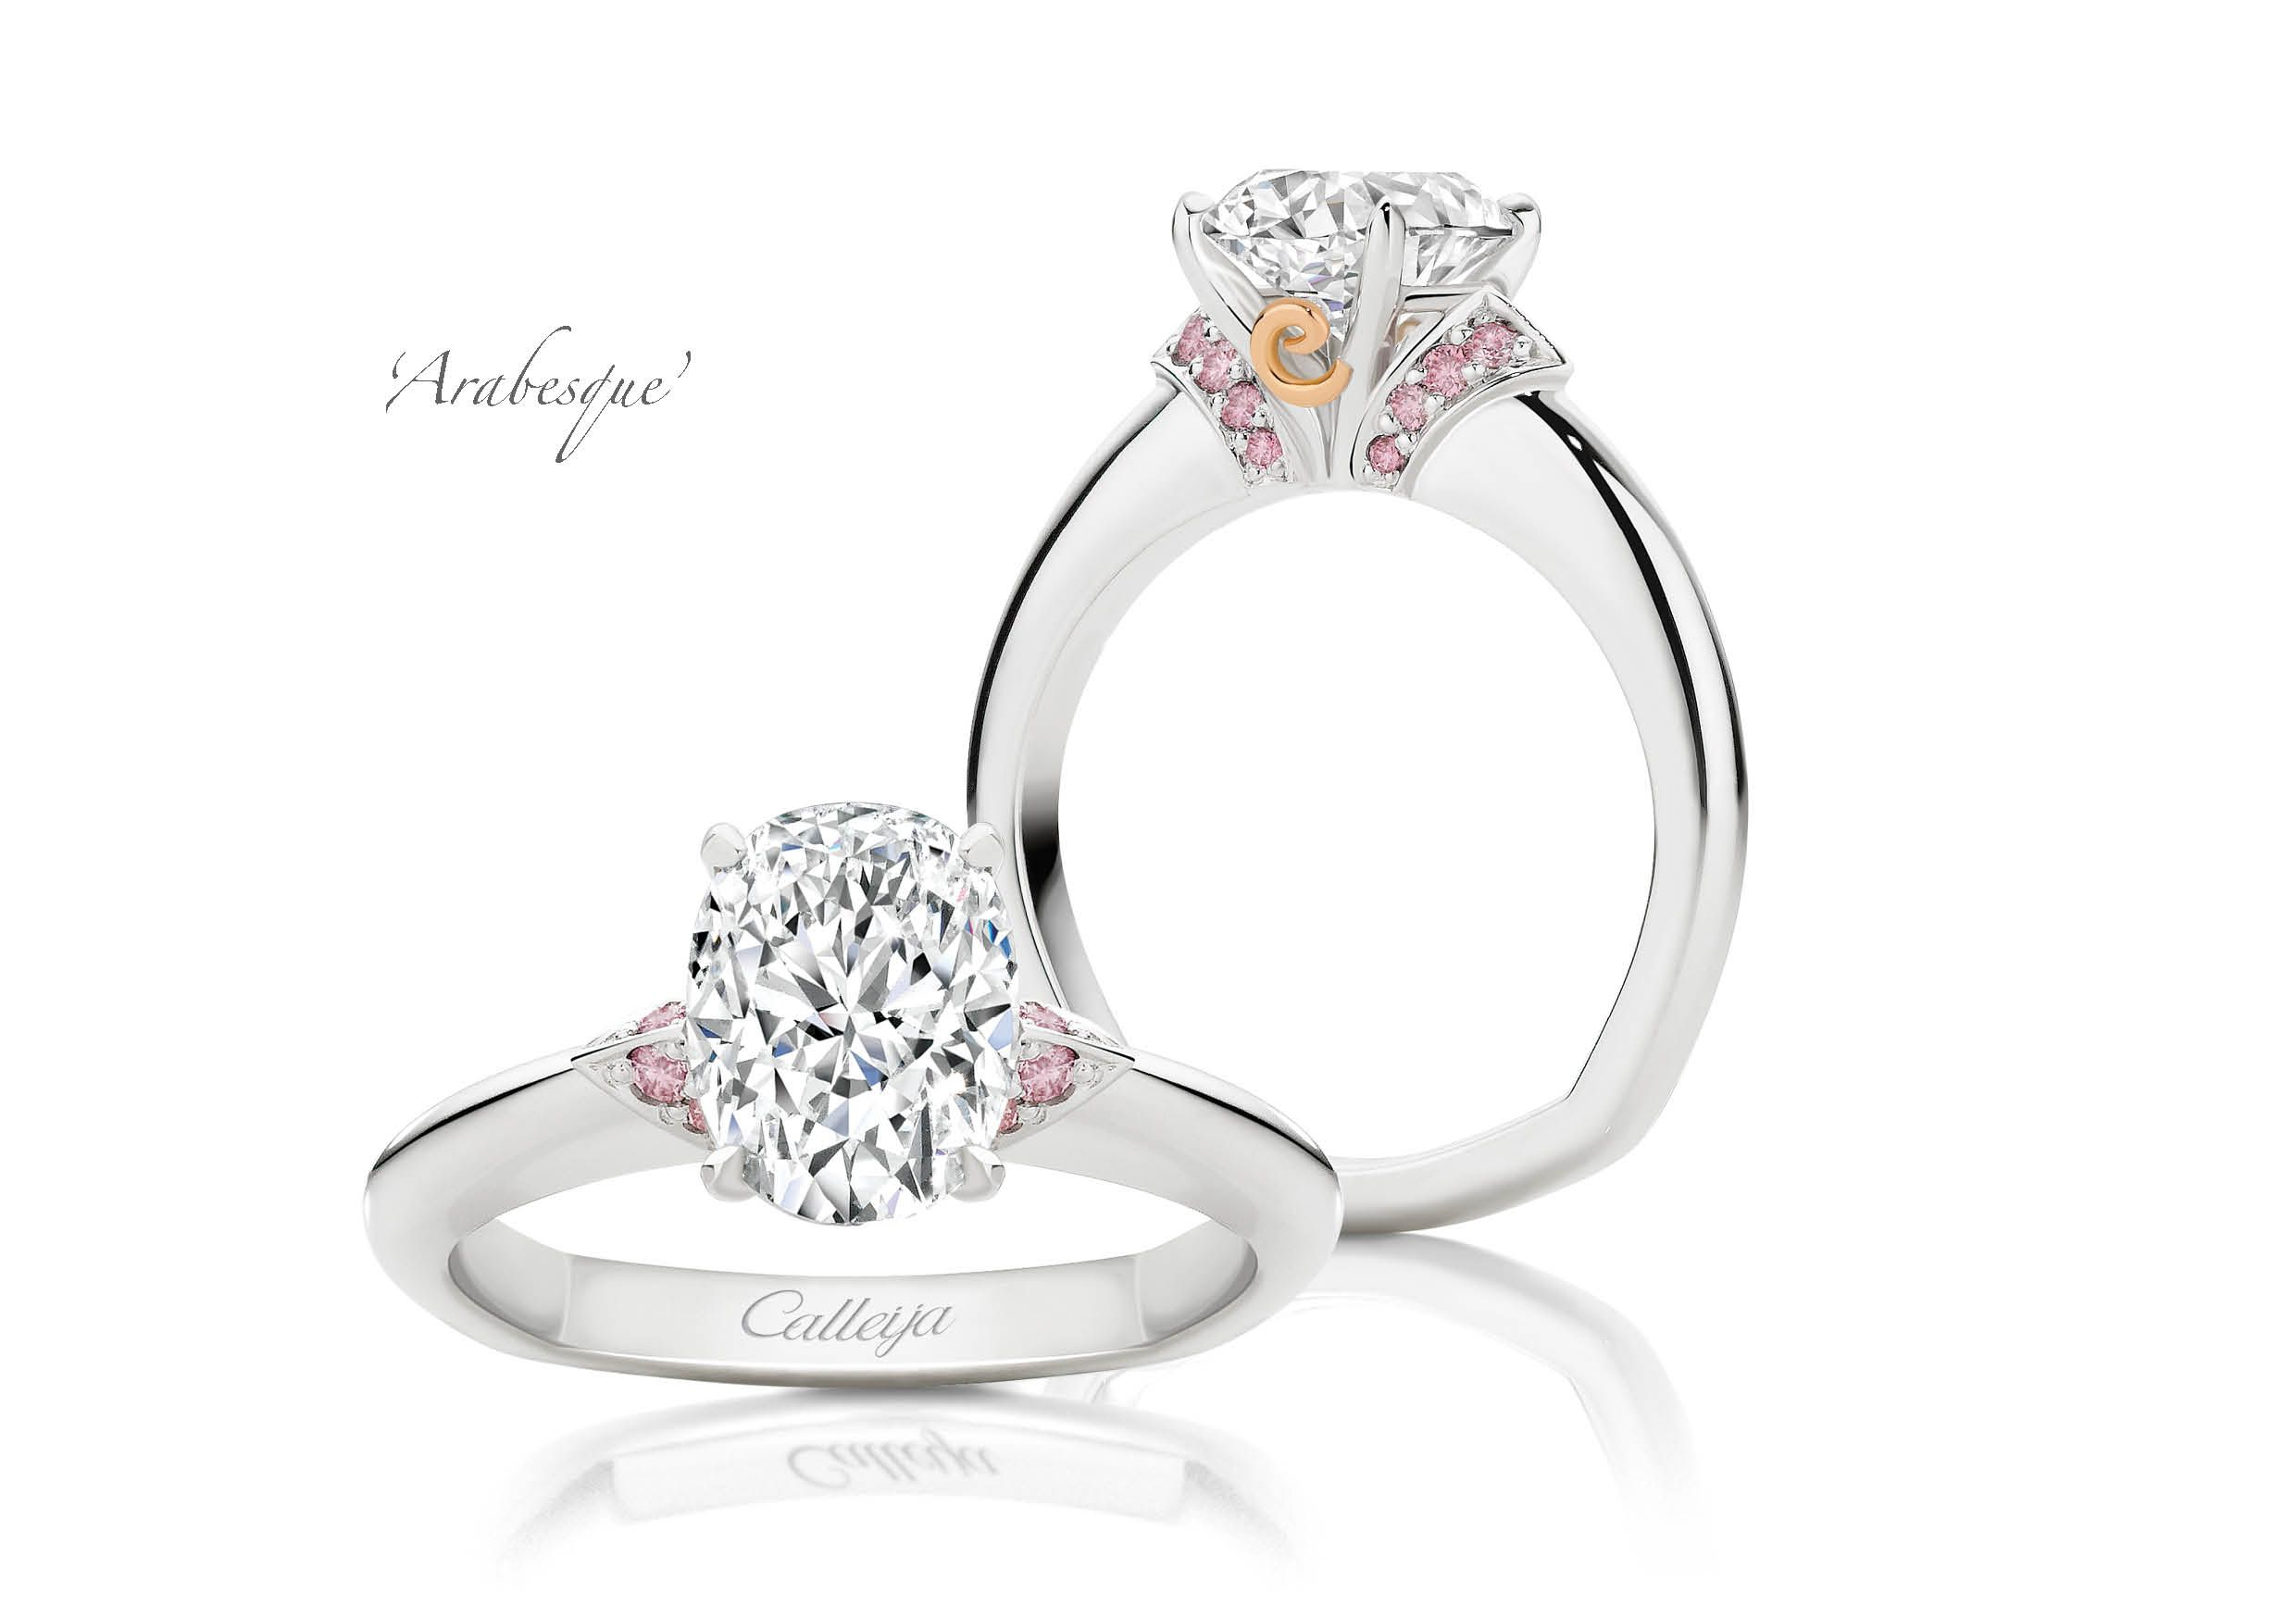 Arabesque White And Argyle Pink Diamond Ring With Images Pink